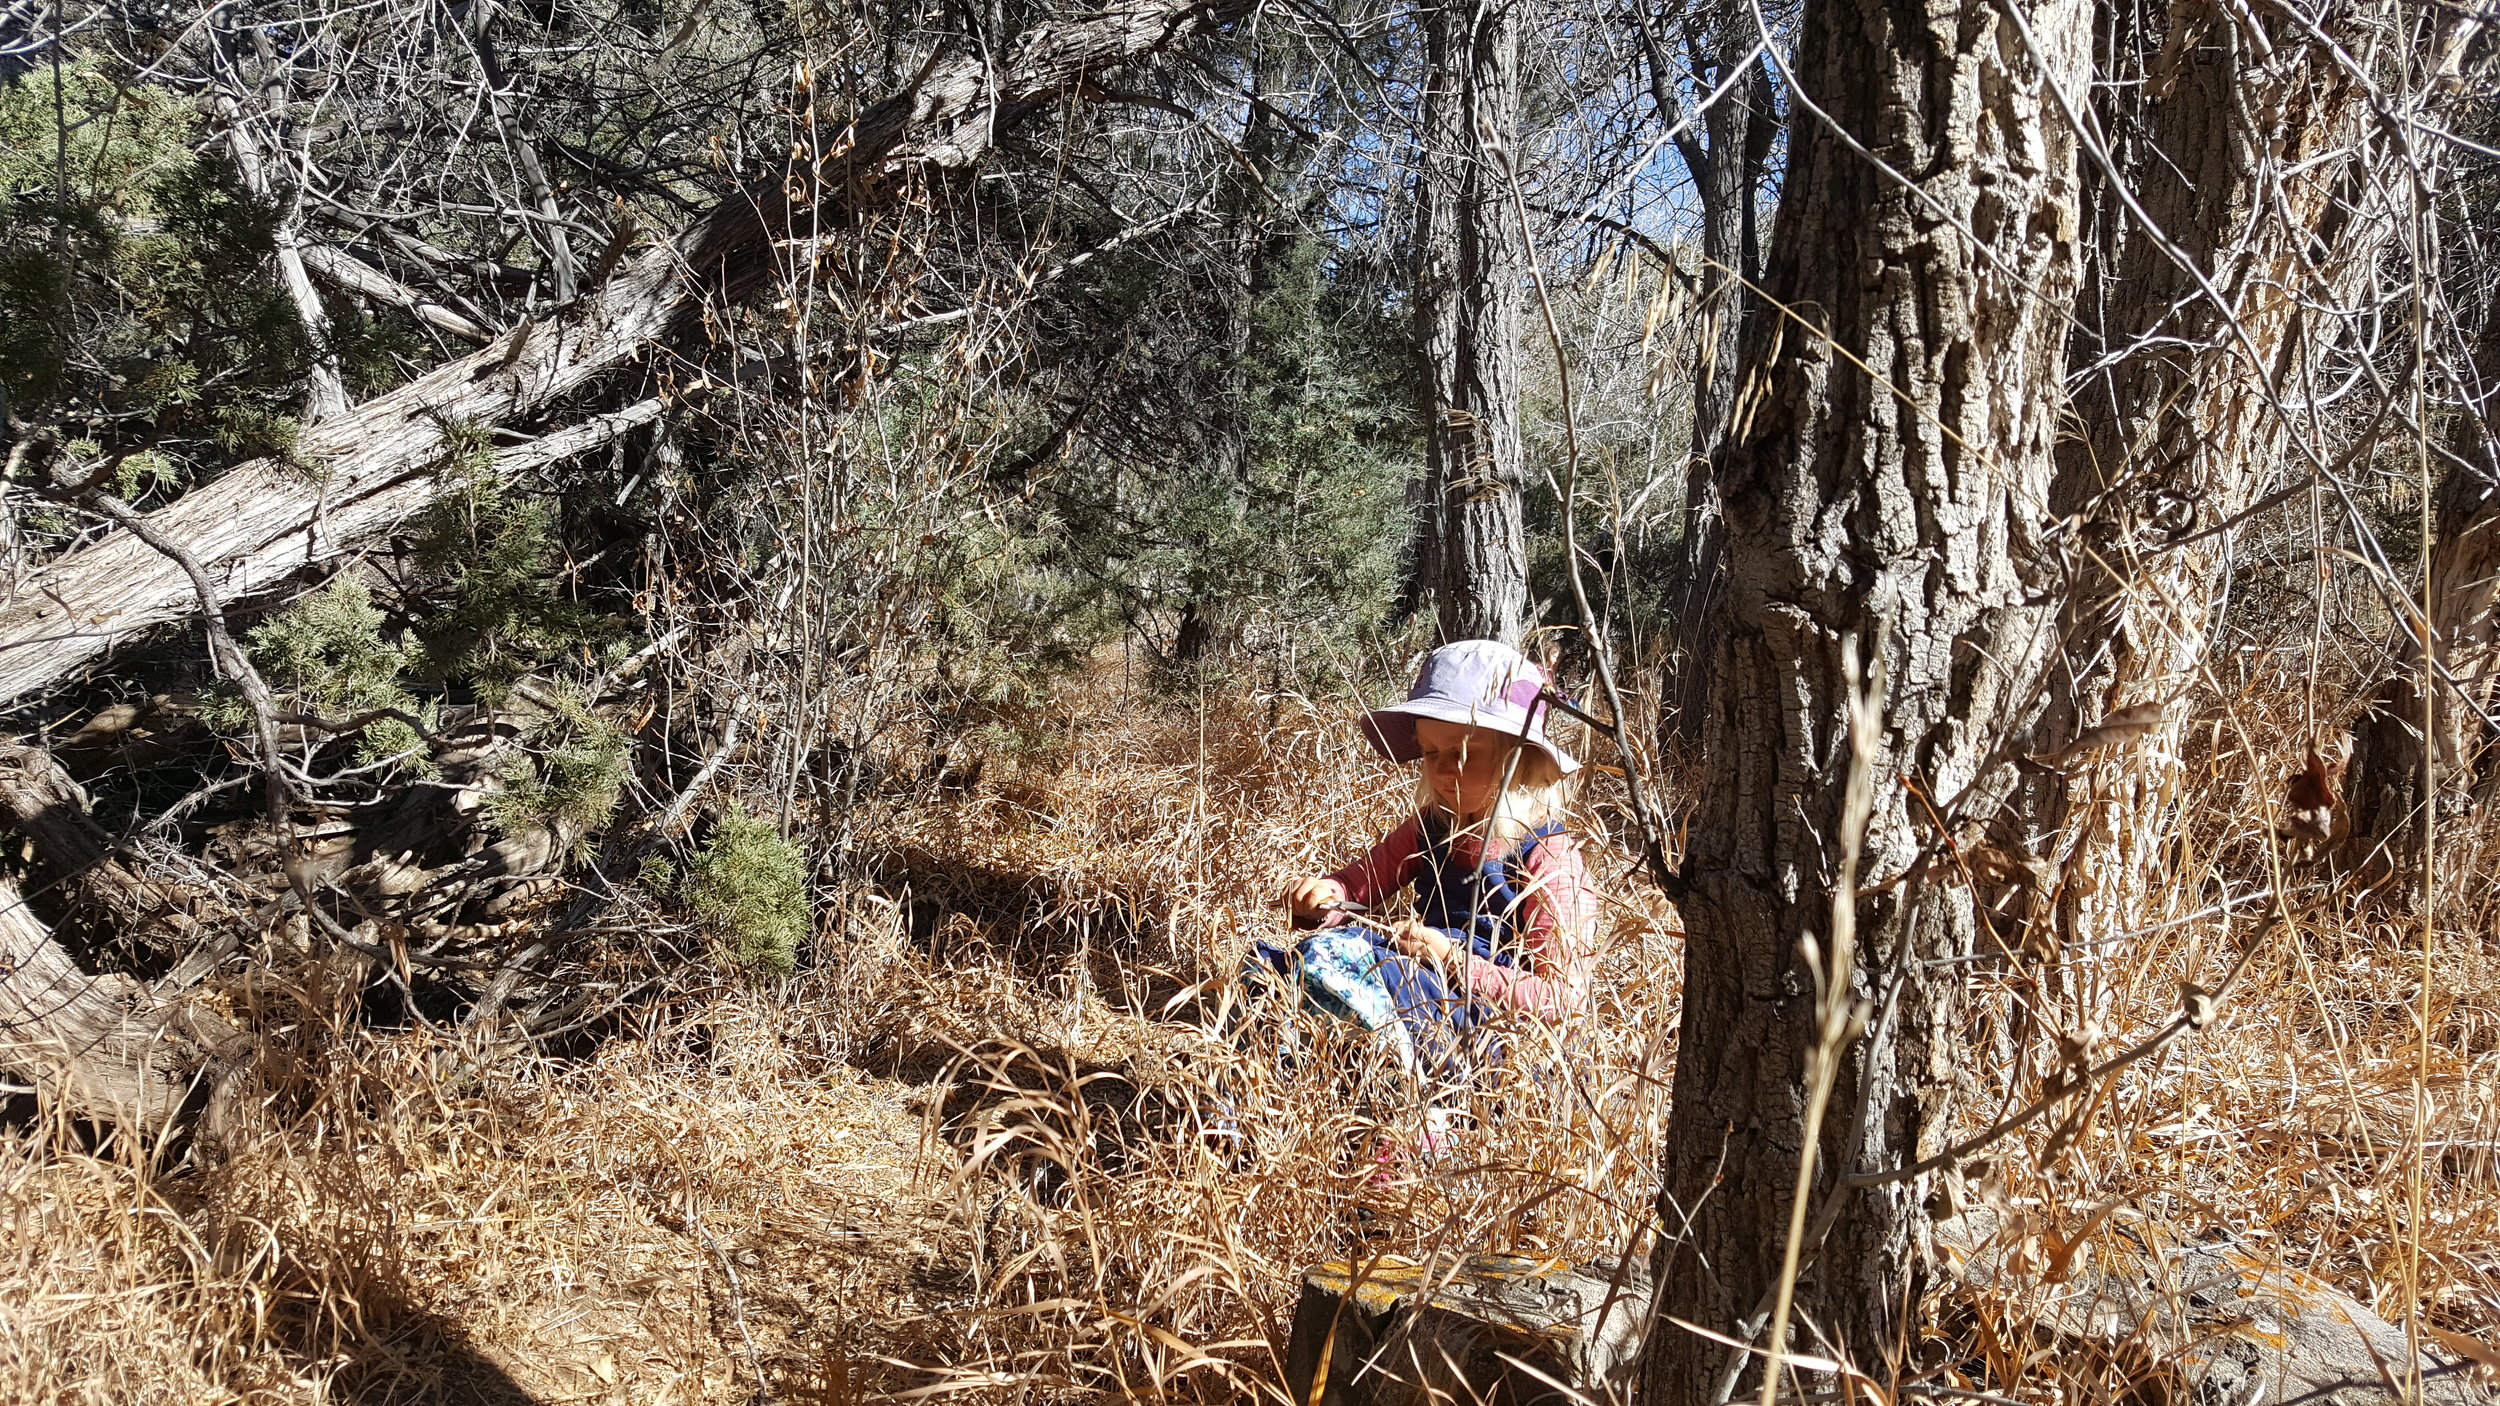 One of the things that makes outdoor education so rich is that it provides opportunities for the children to socialize, learn games and crafts, and sit quietly by oneself - all in the stretch of a day. There's so much room in Mother Nature.